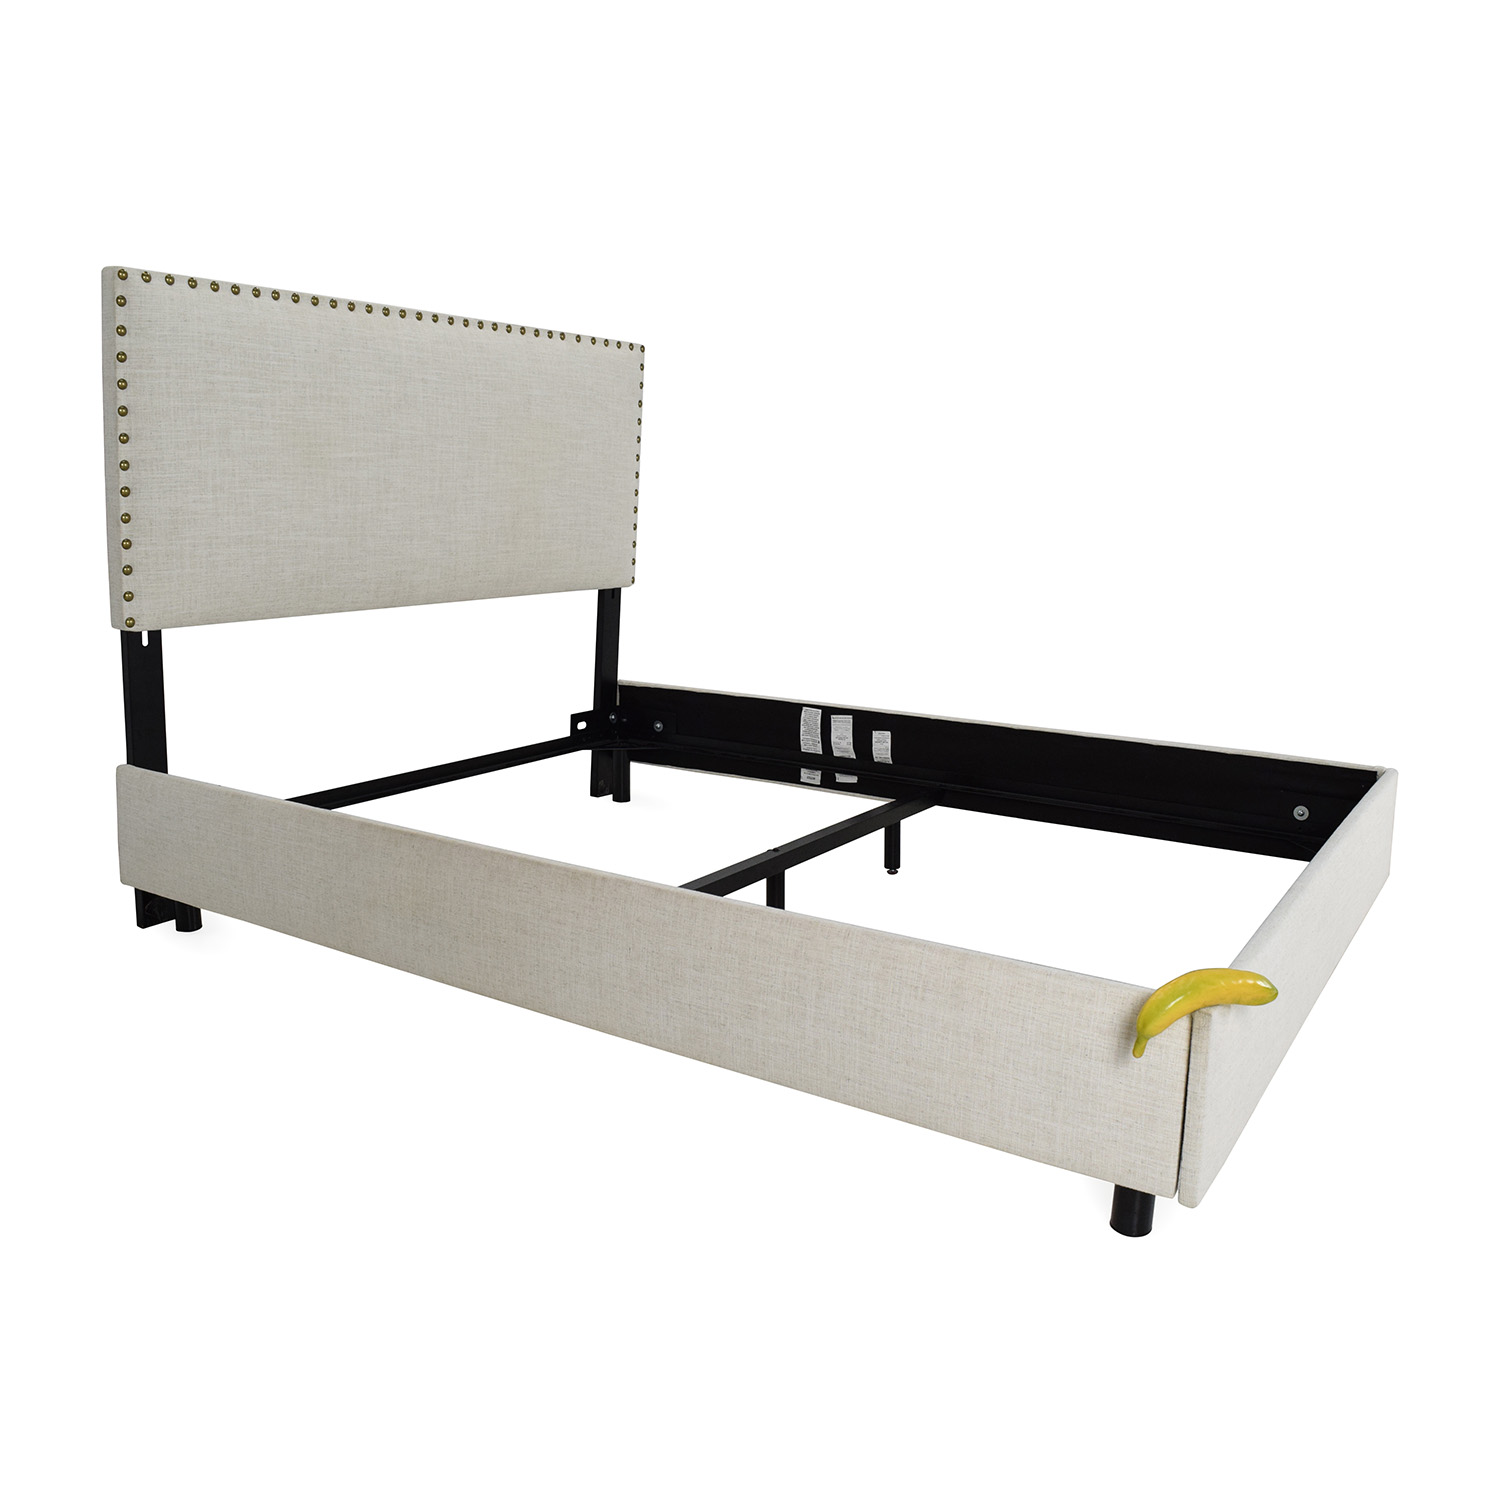 50 Off Joss And Main Joss And Main Queen Bed Frame Beds